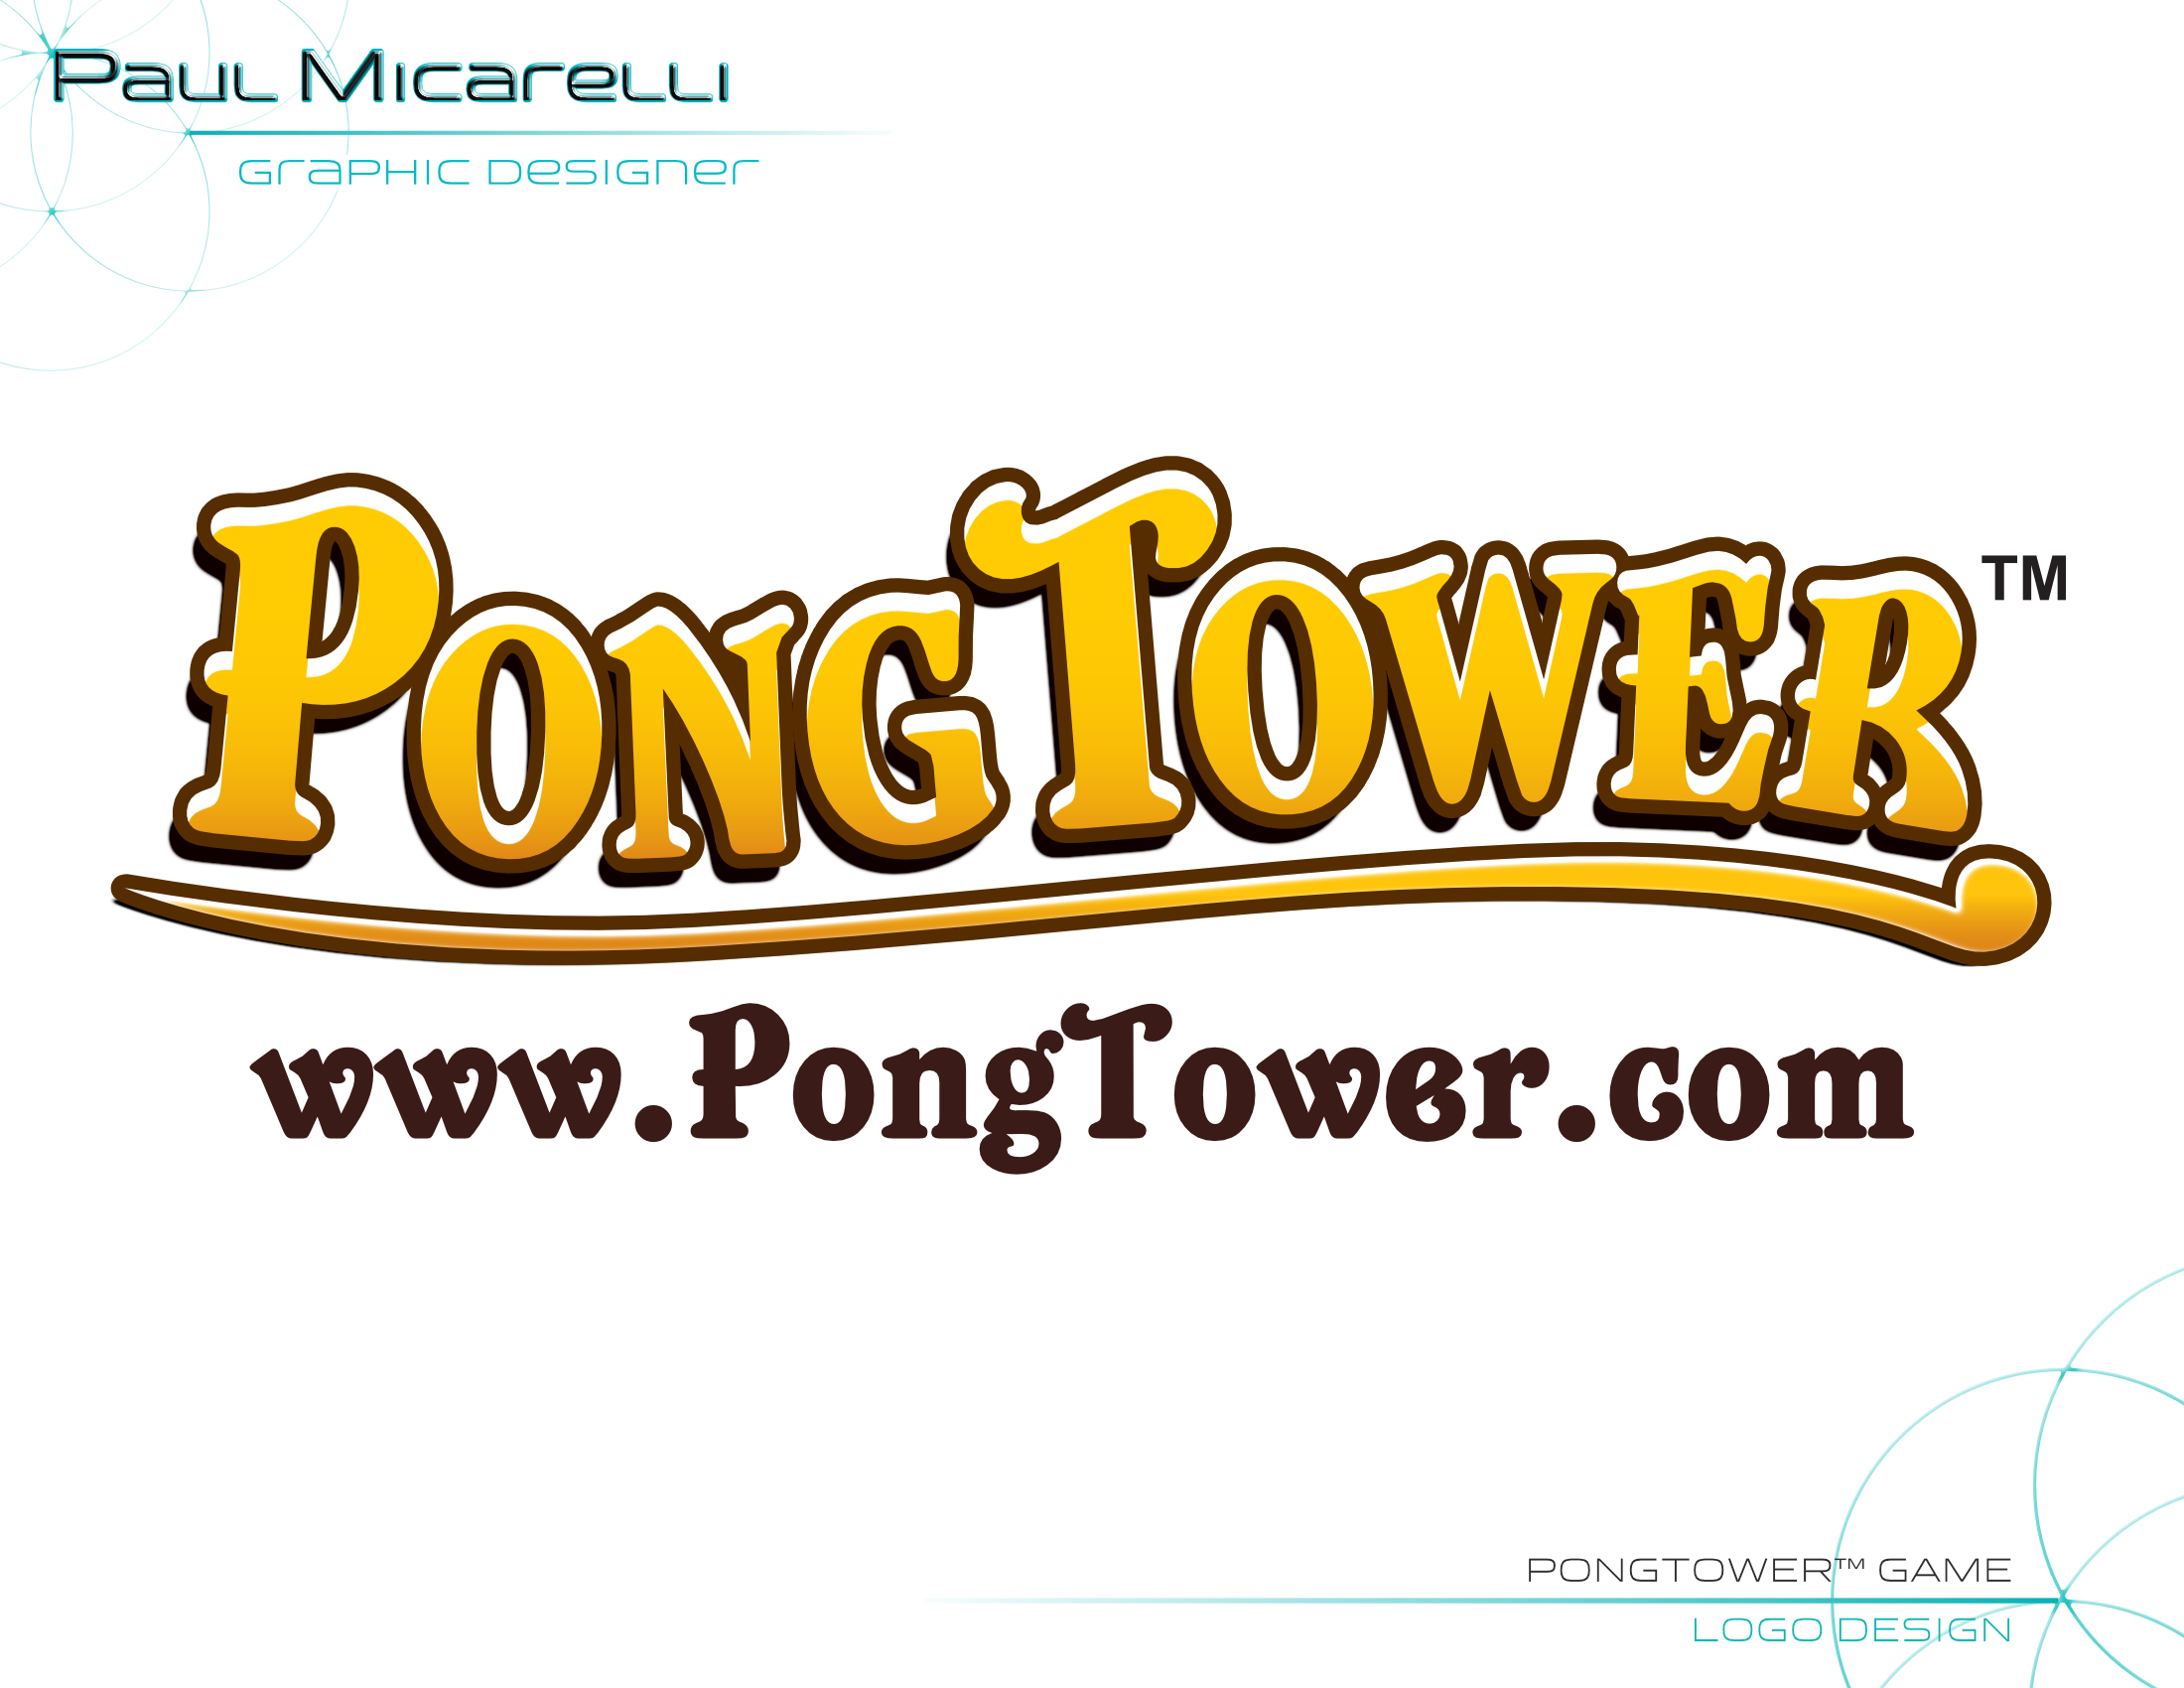 Paul-Micarelli-PongTower Logo